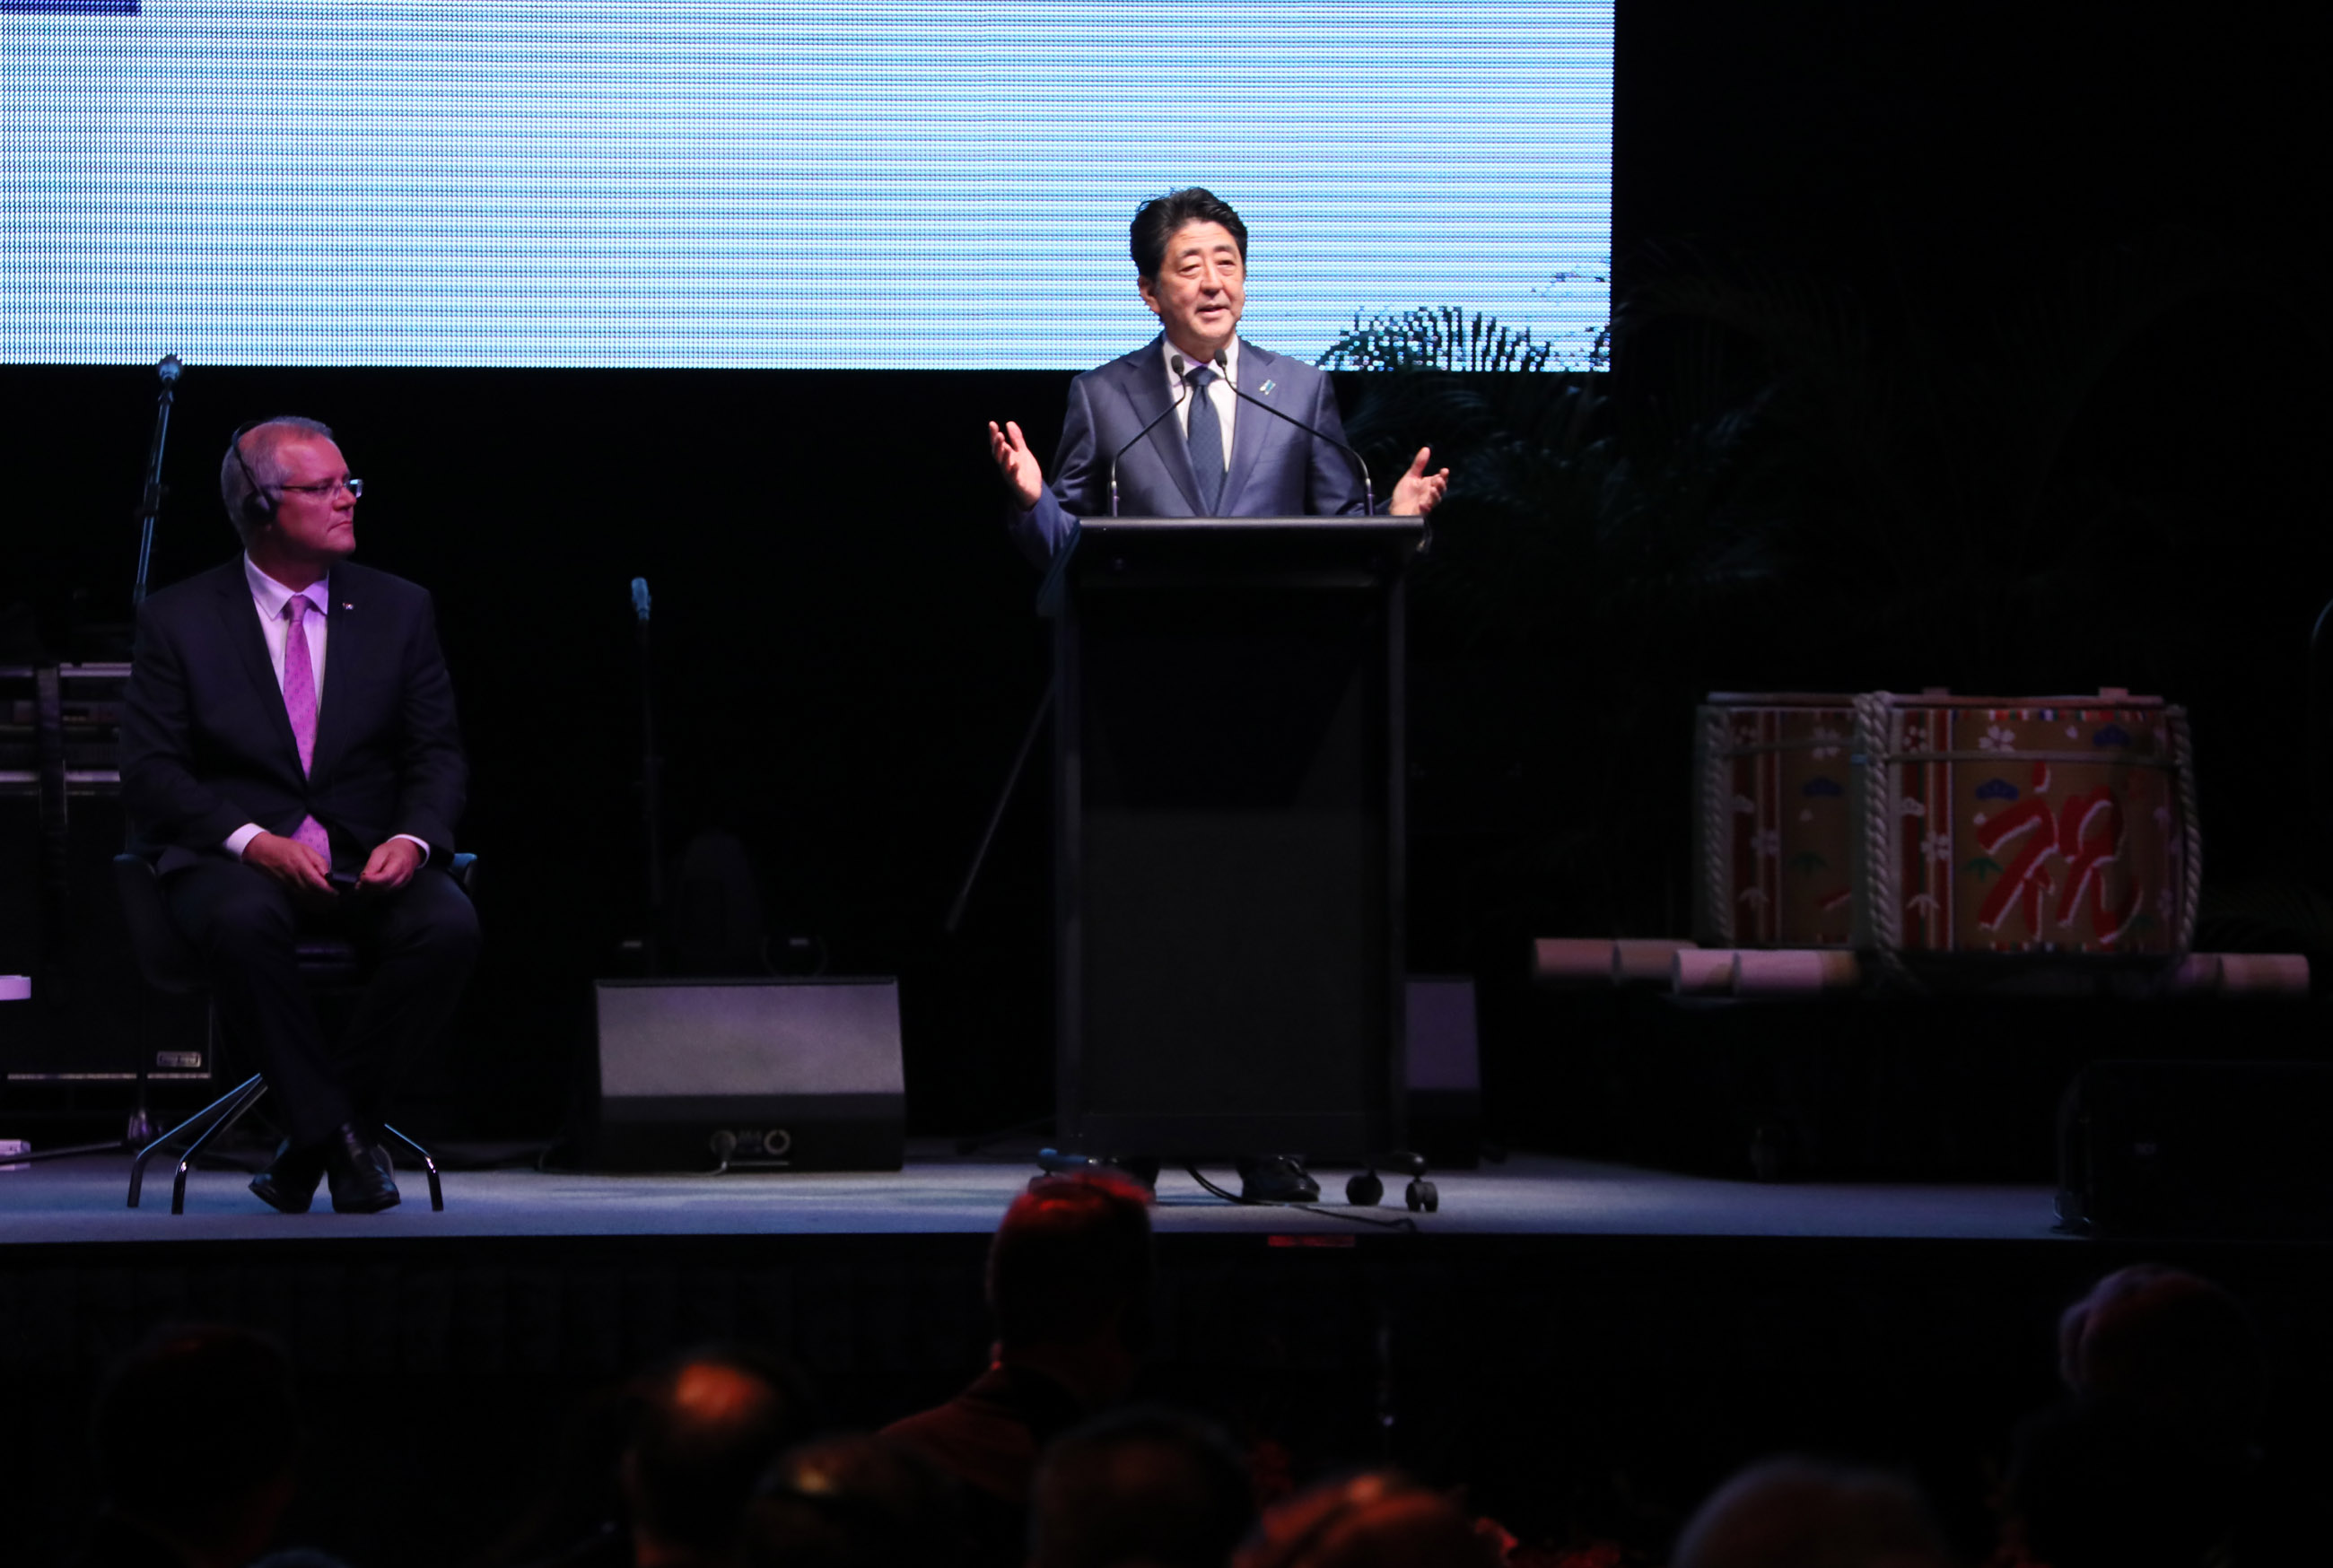 Photograph of the Prime Minister delivering an address at a commemorative ceremony for the Ichthys LNG Project